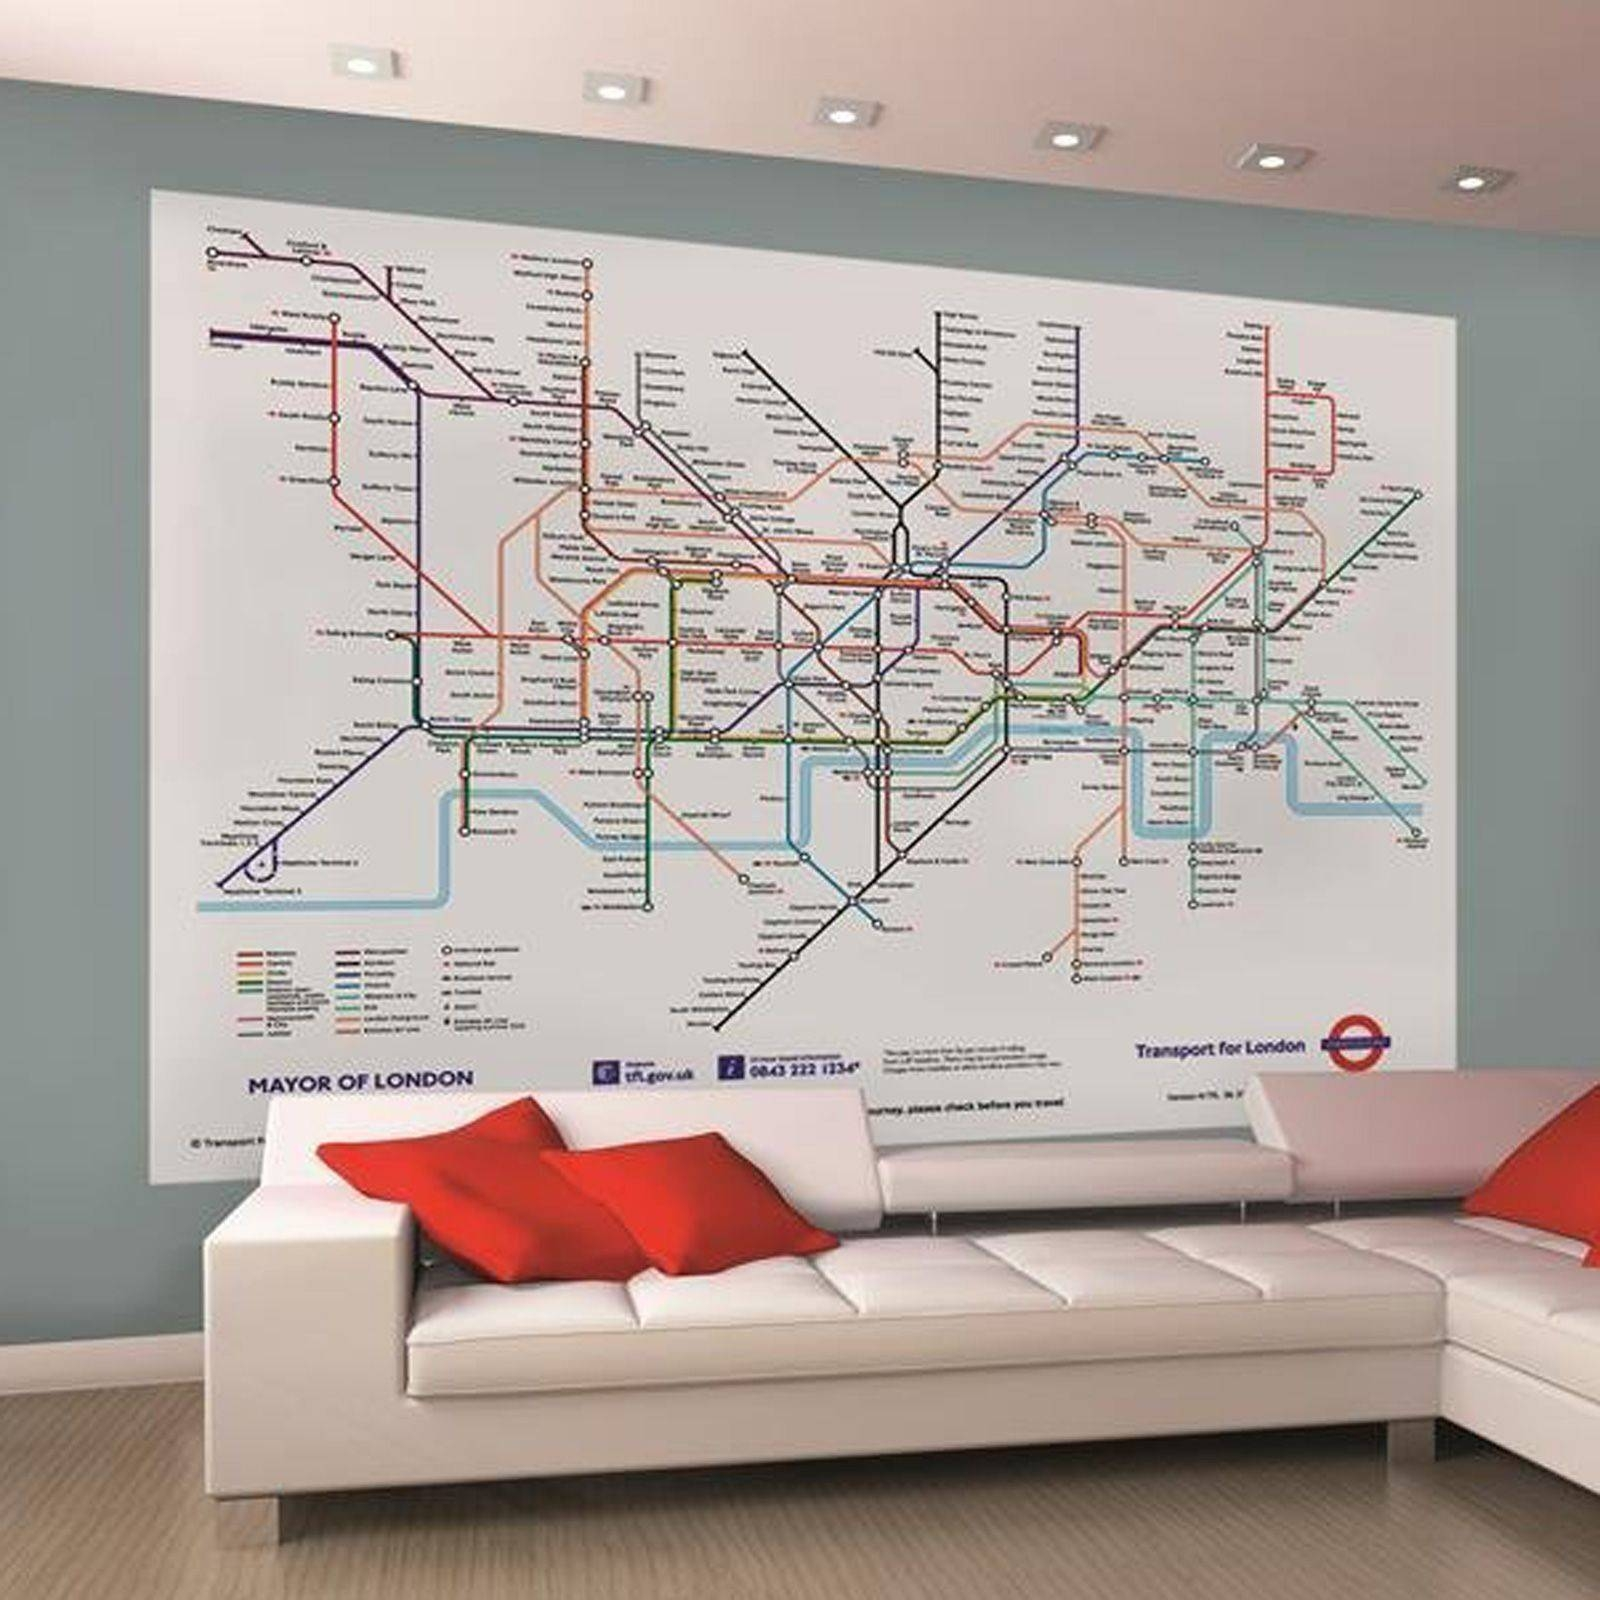 Wall Murals Room Decor Large Photo Wallpaper Various Sizes | Ebay Pertaining To Recent London Tube Map Wall Art (View 20 of 20)